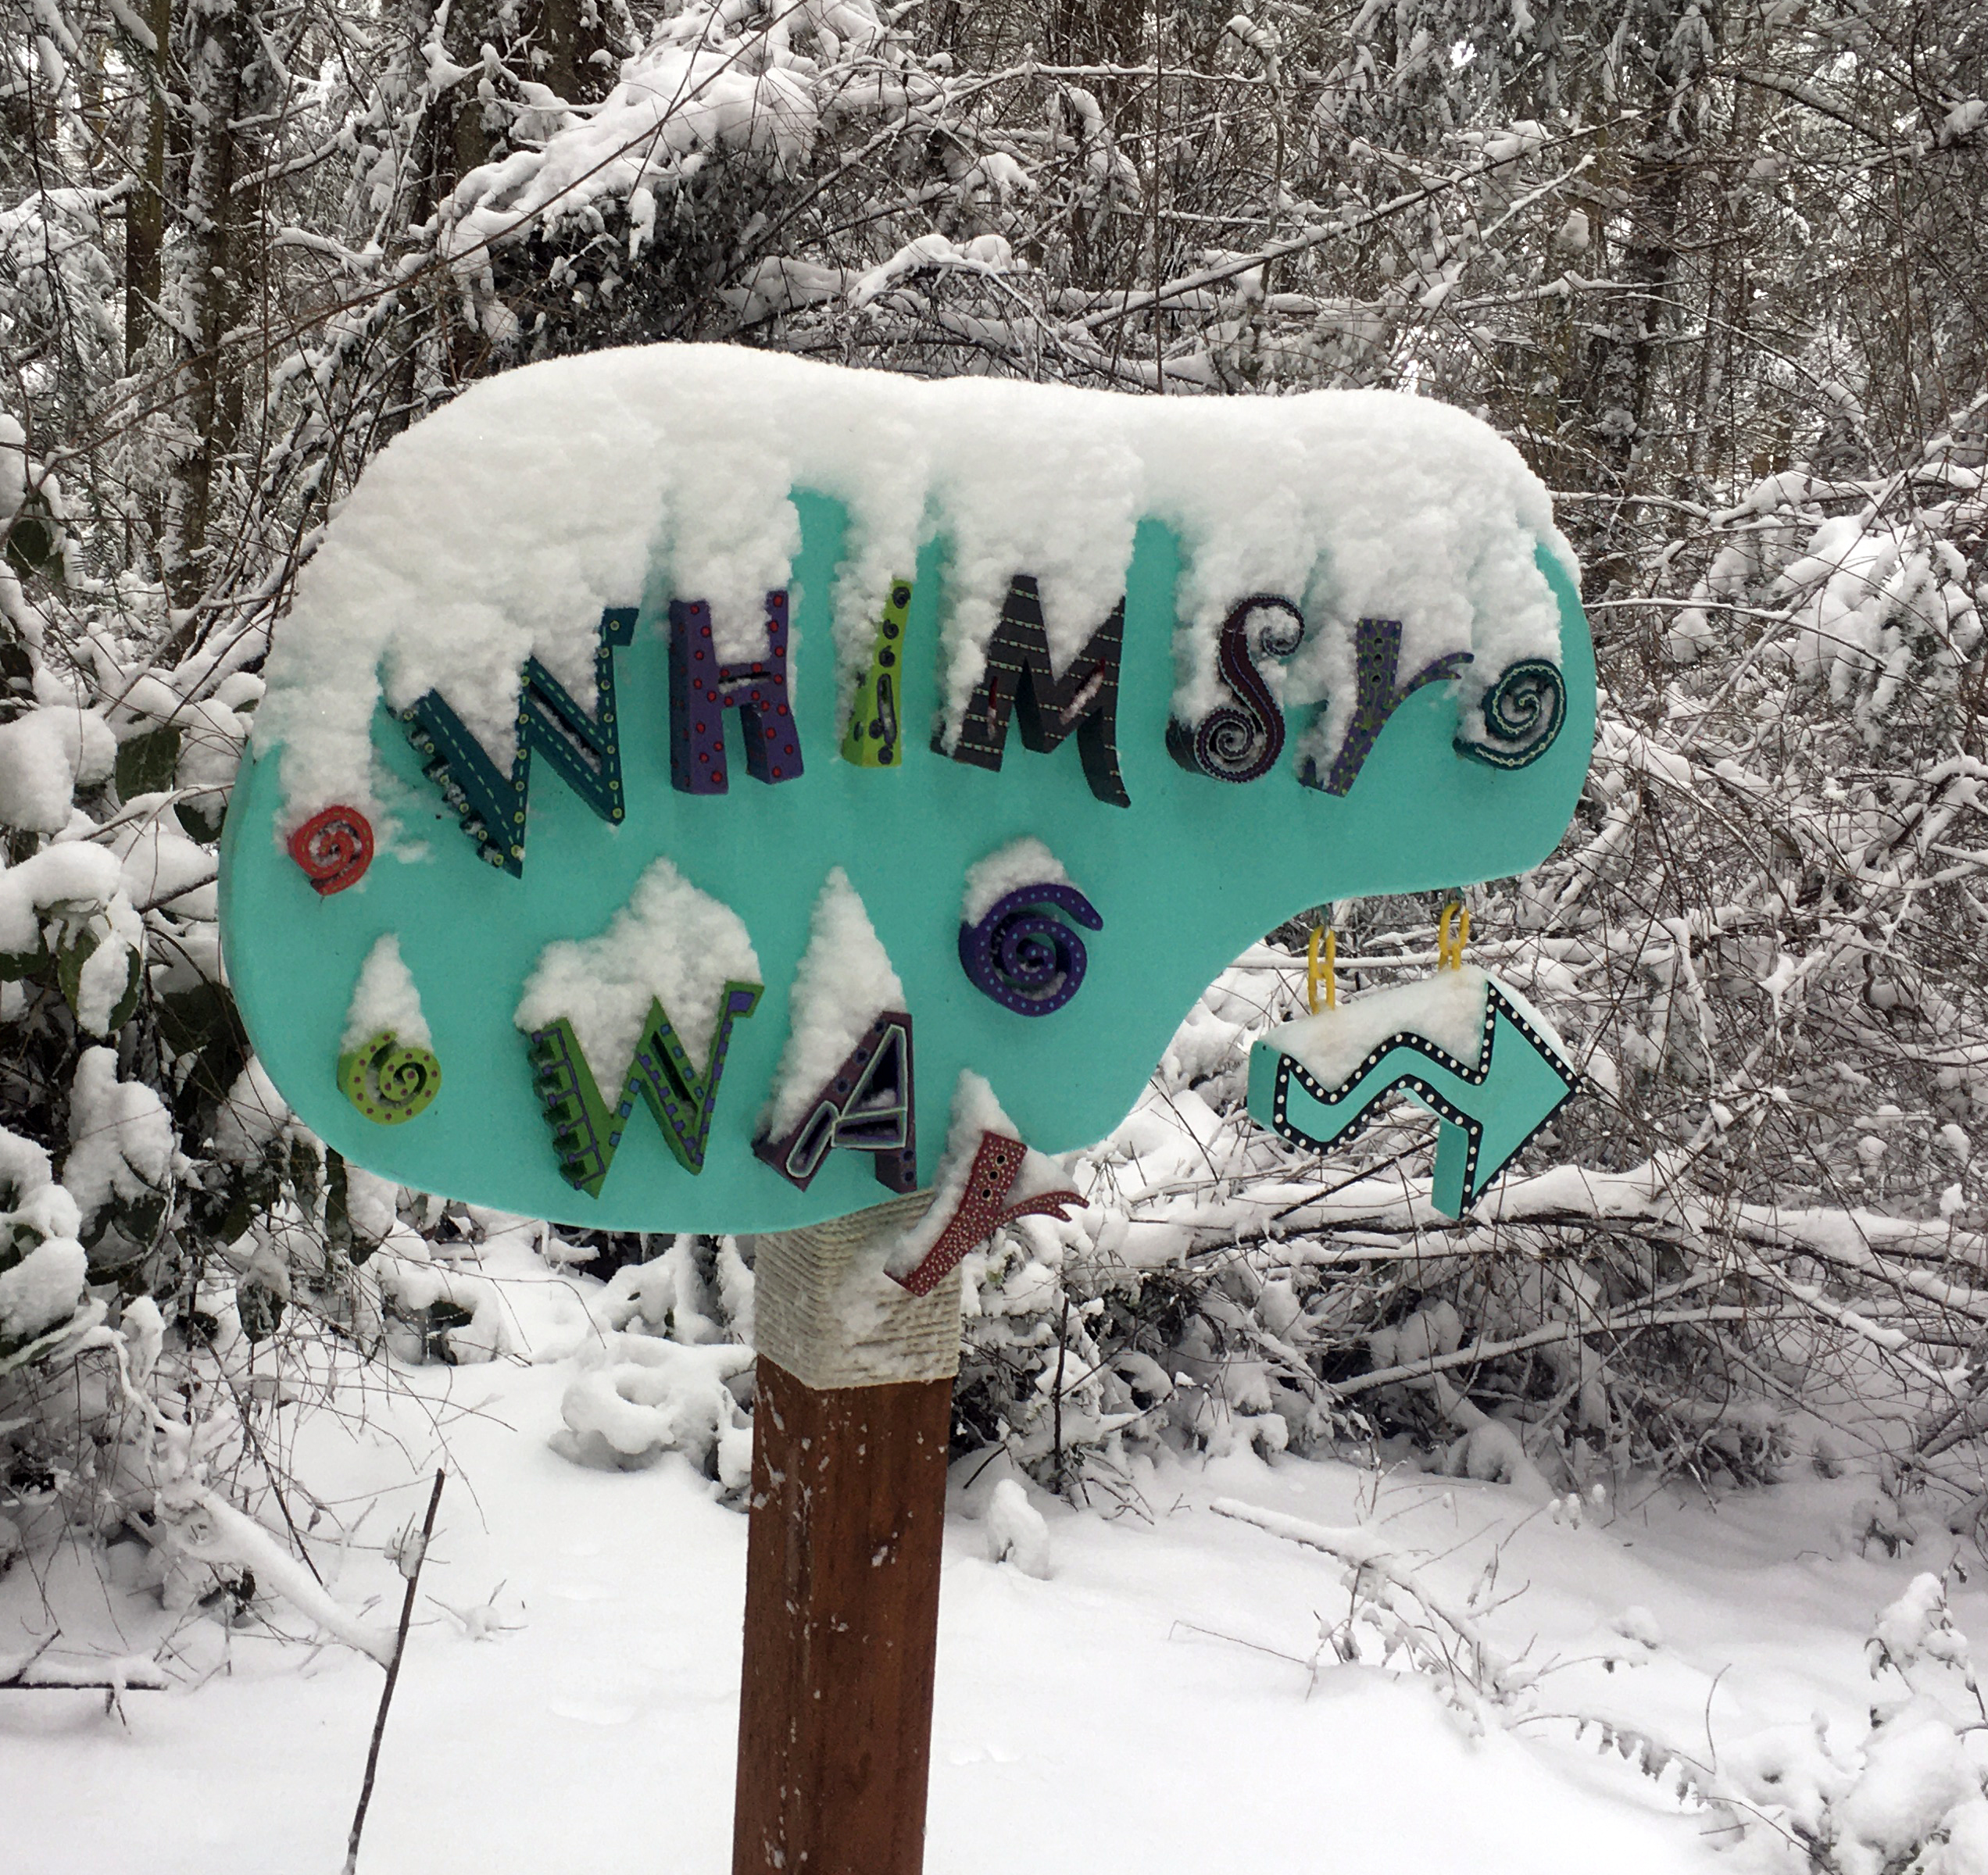 Whimsy Way trail sign by Linda Hauser covered in snow at Price Sculpture Forest park garden Coupeville Whidbey Island